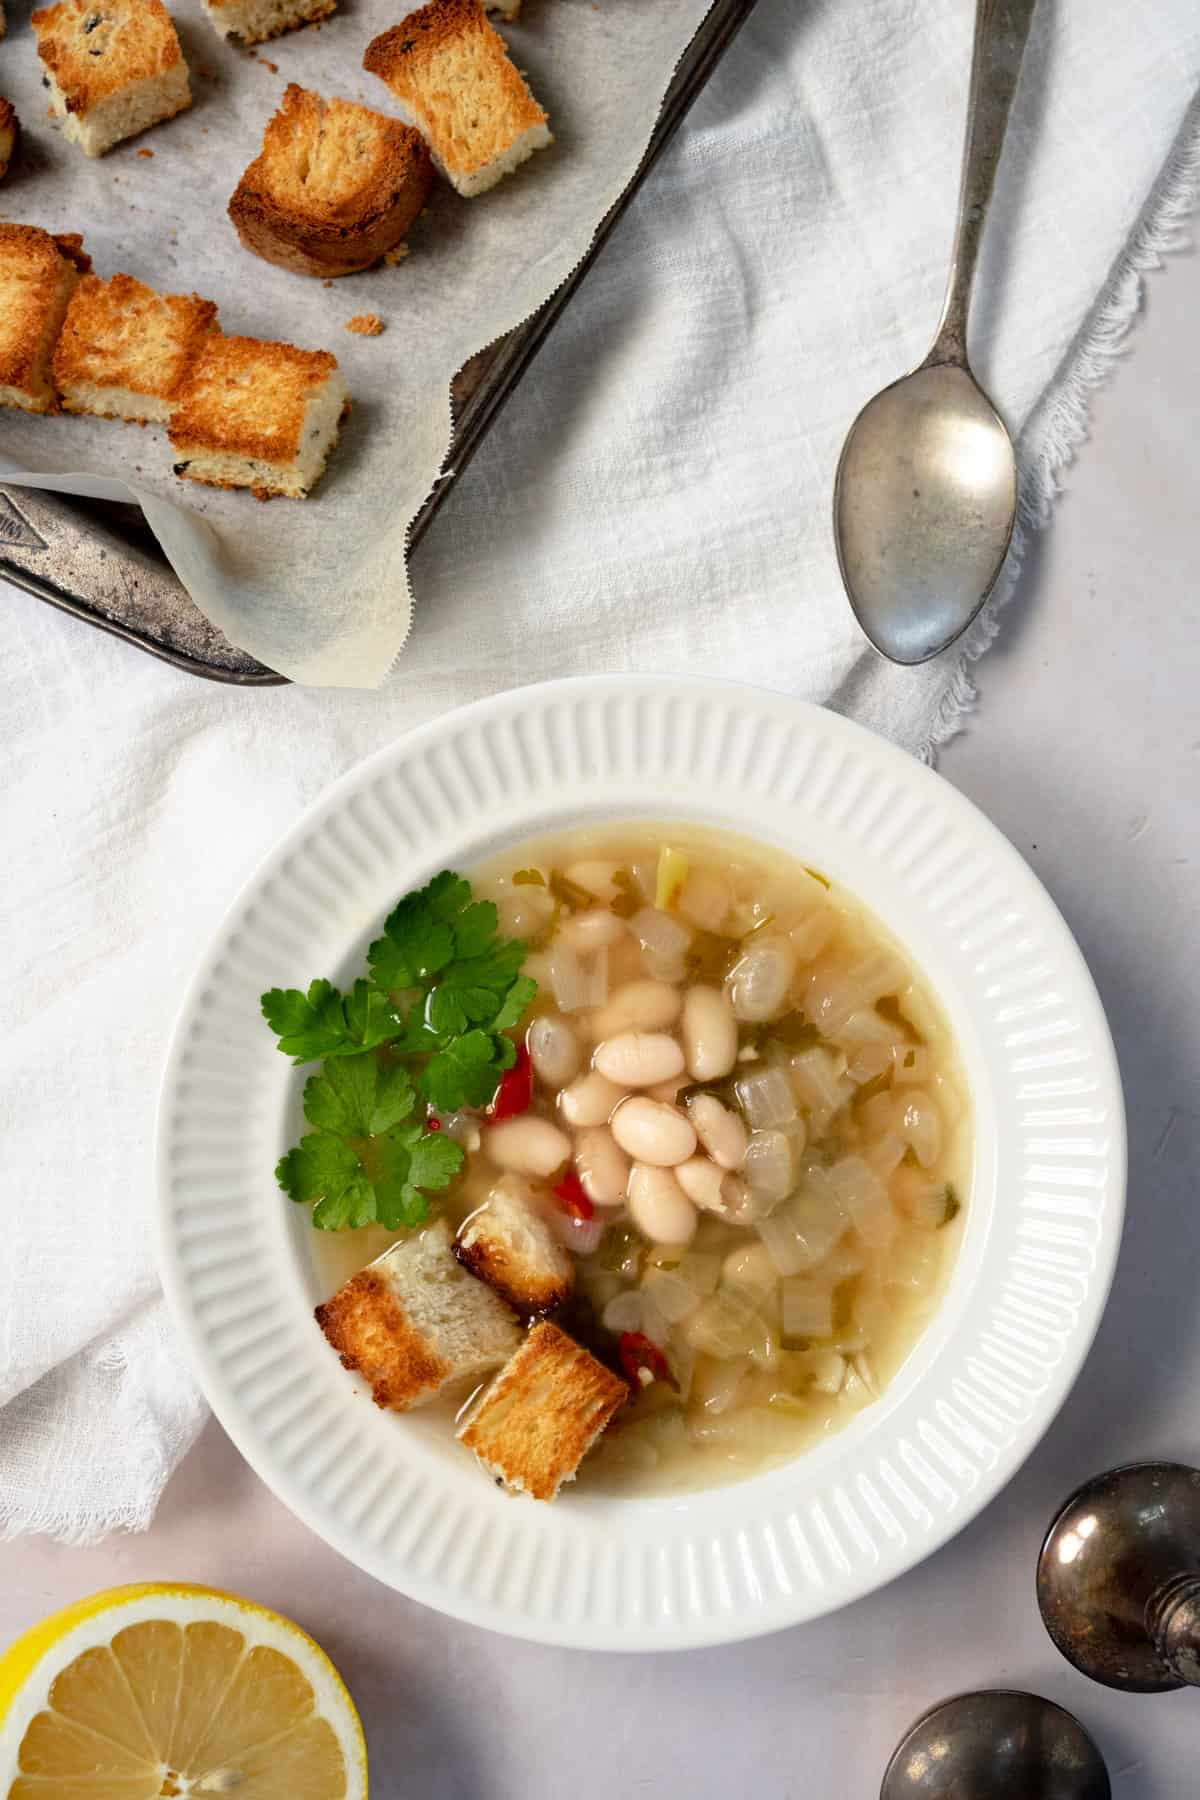 a white bowl of white bean soup with a side tray of croutons